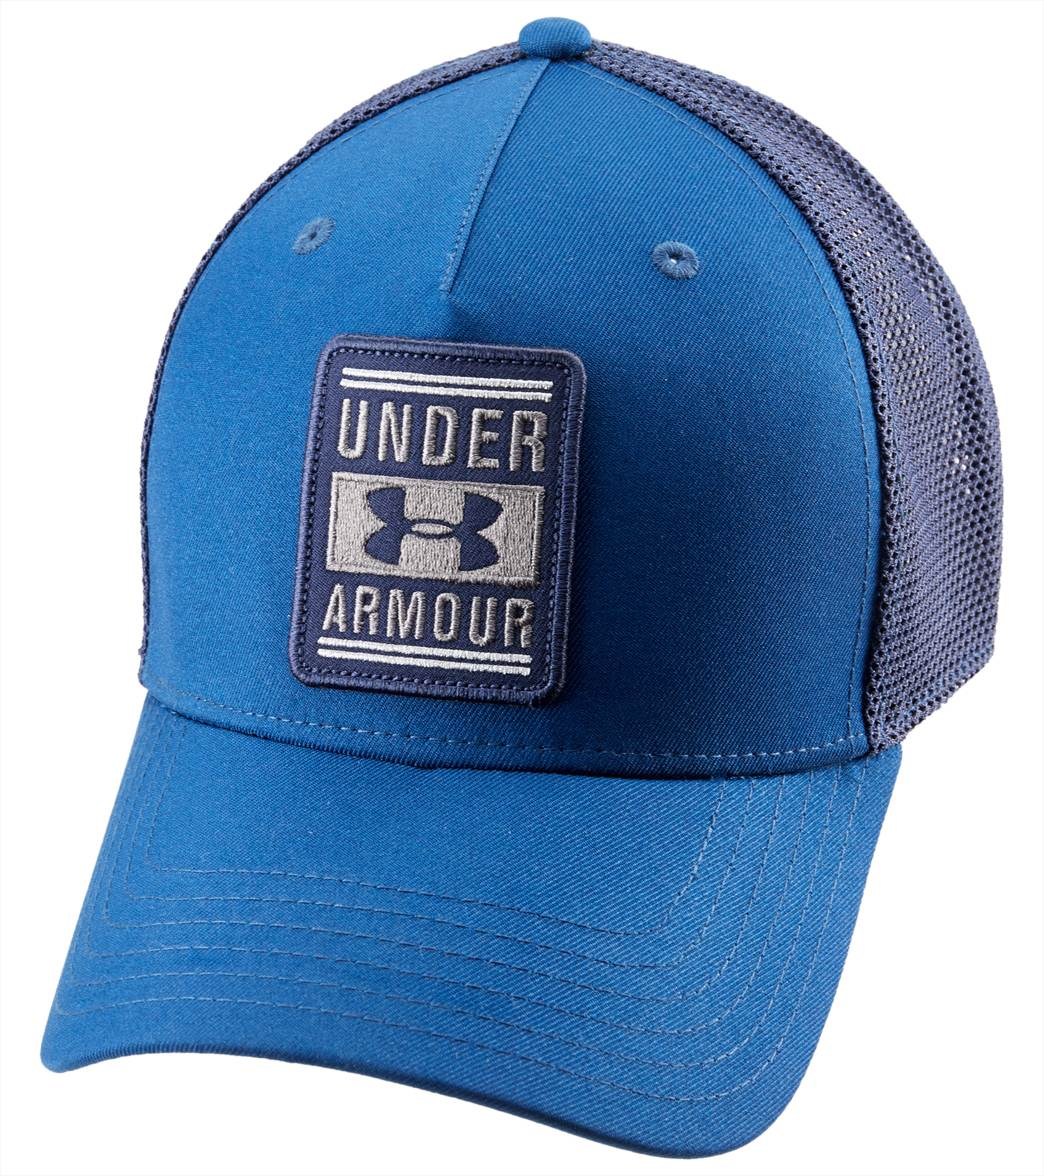 Under Armour Men s Outdoor Performance Trucker Hat at SwimOutlet.com d7c2f22aebb